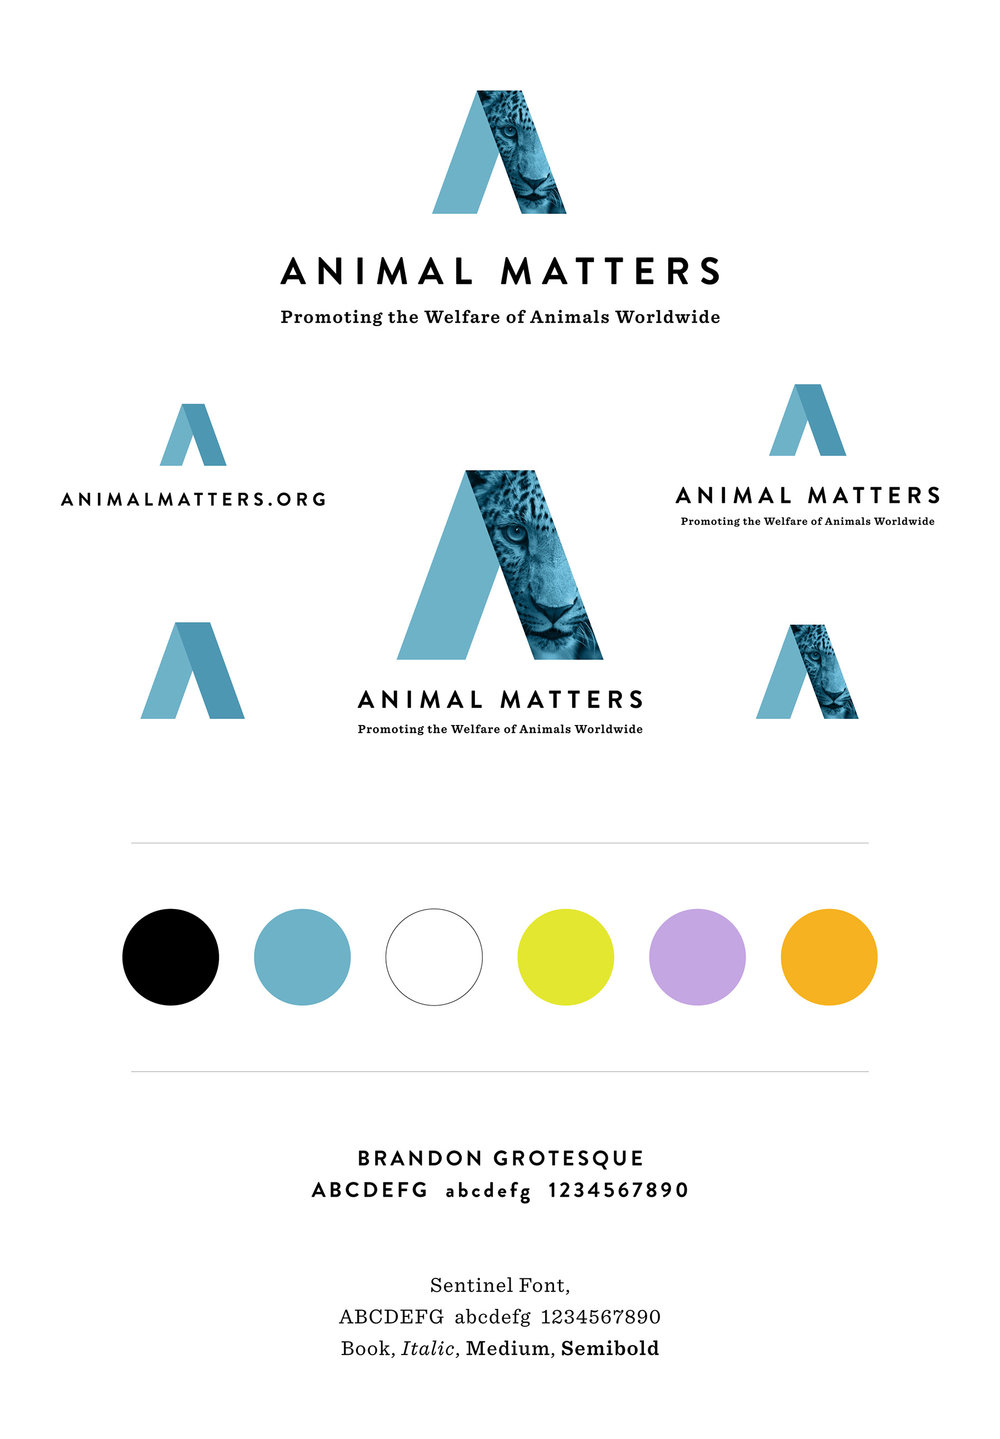 Animal-Matters-Brand-Identity-Design-Guide.jpg